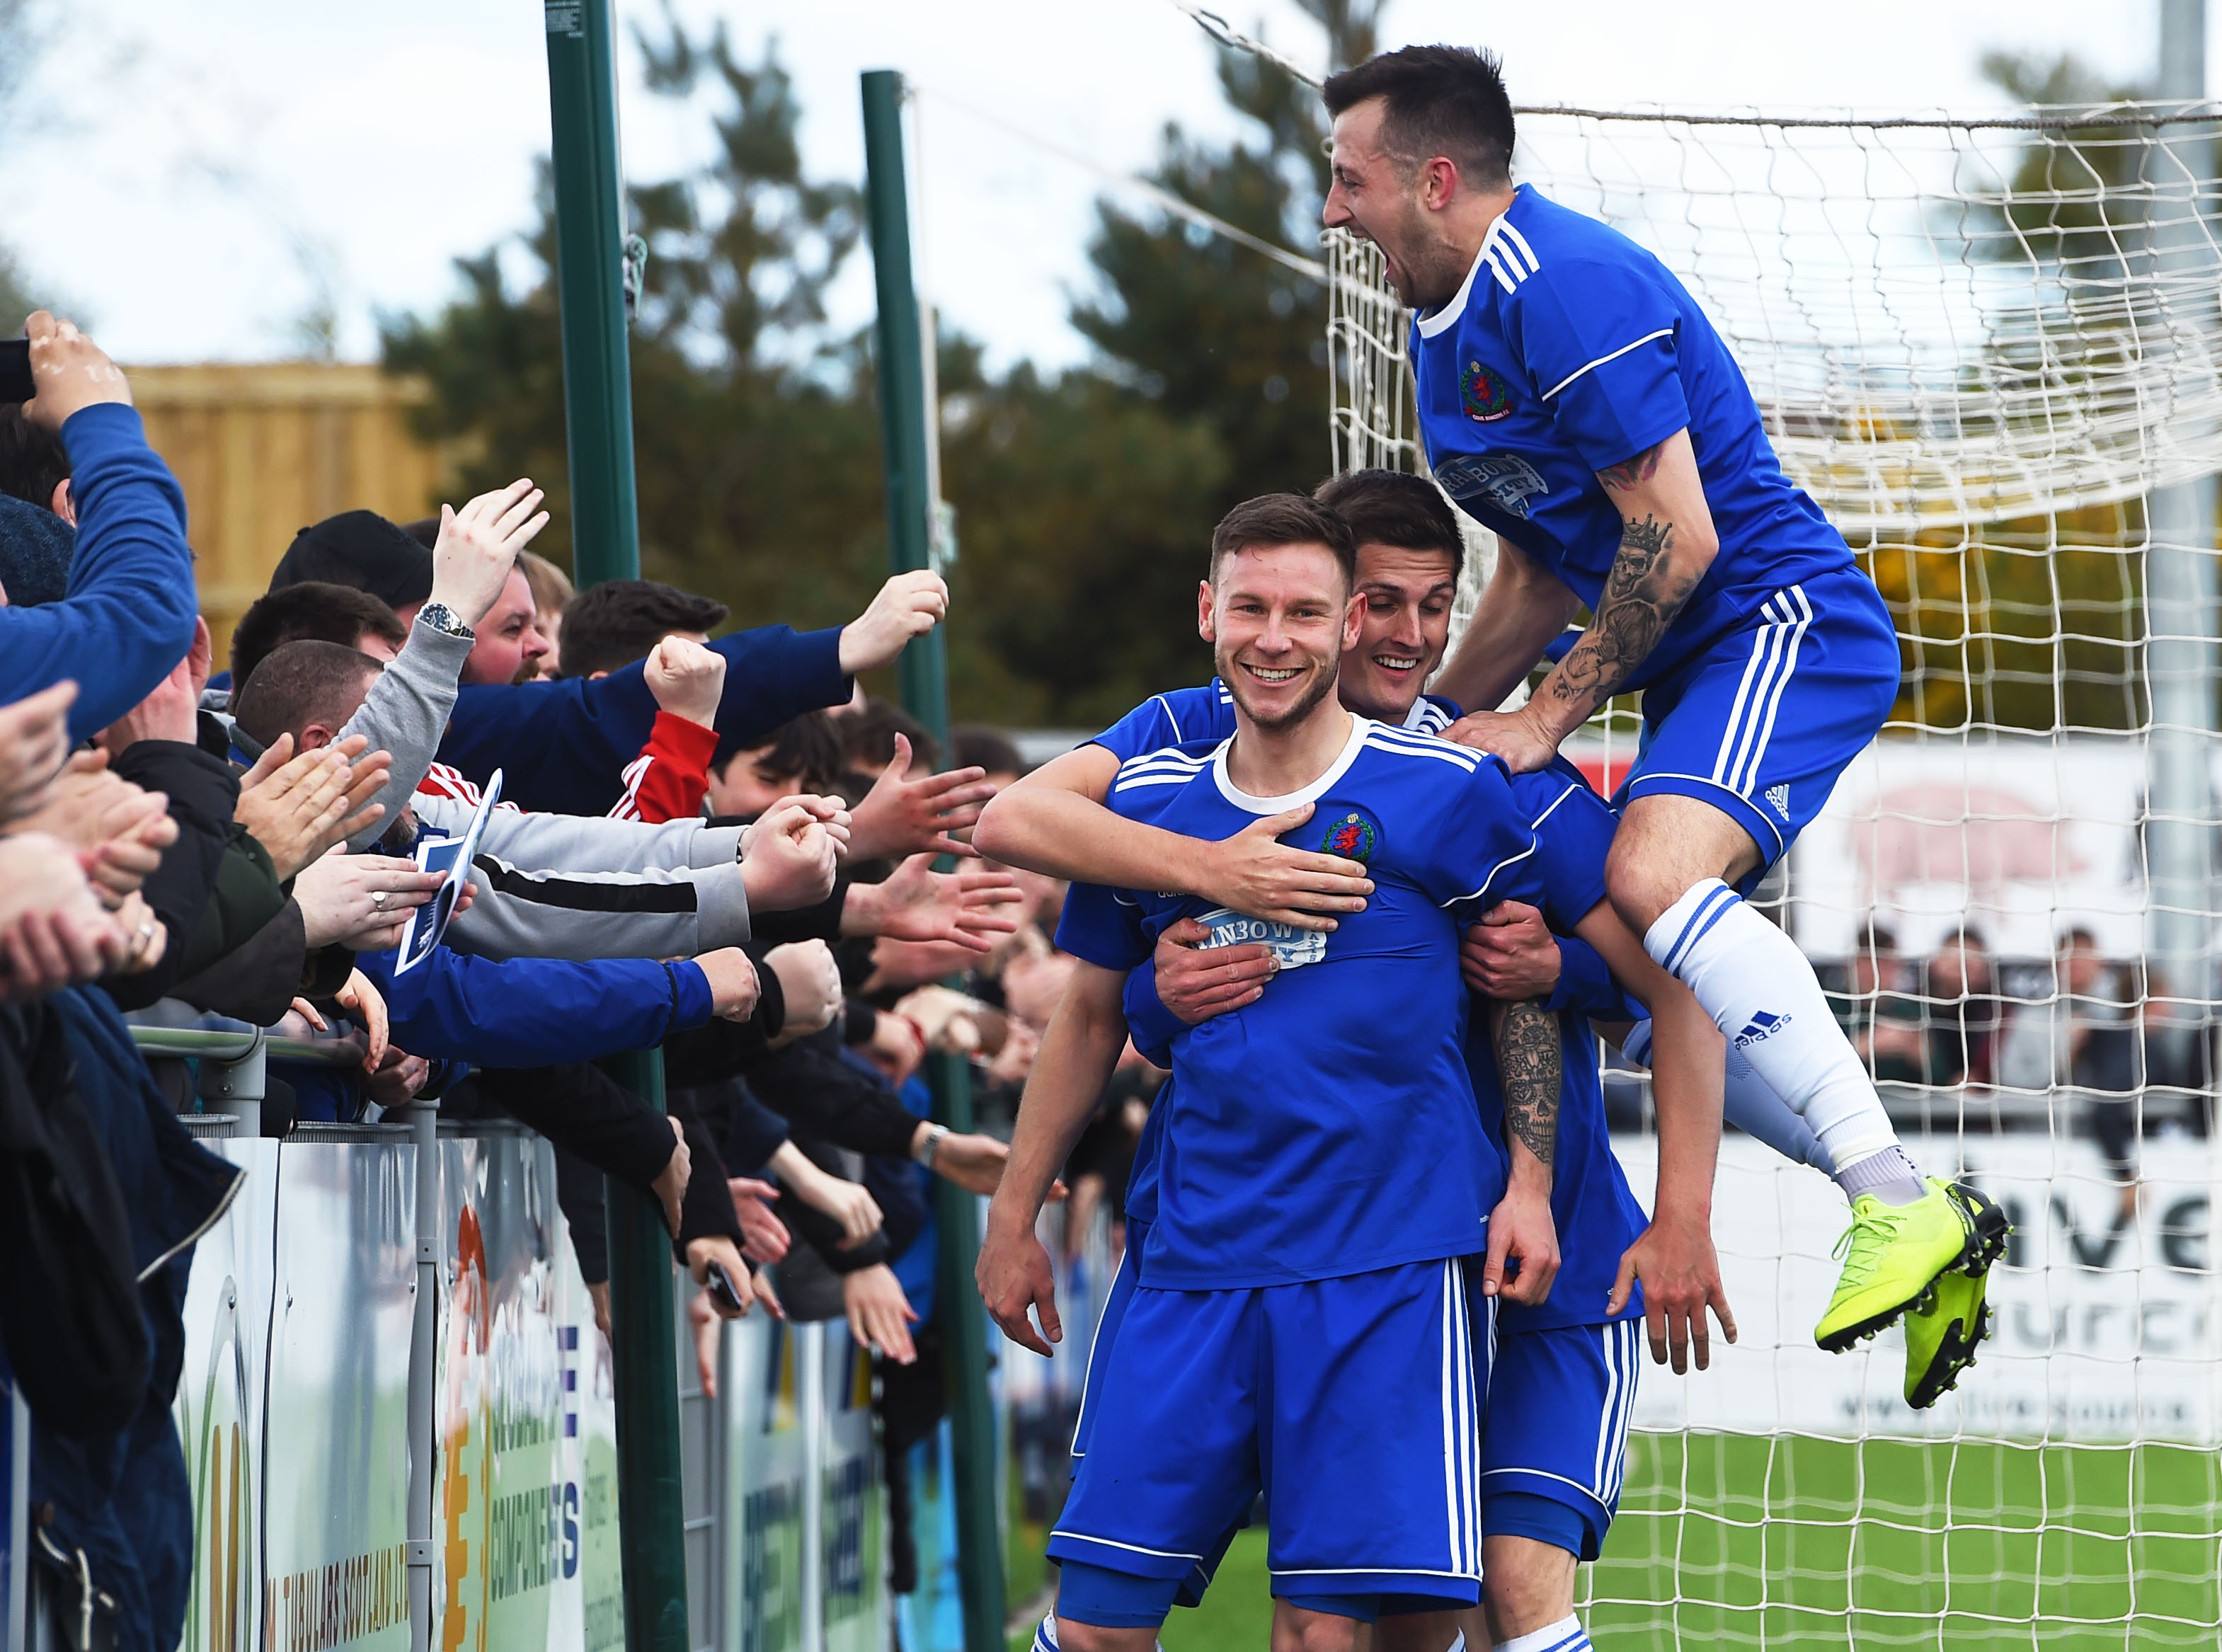 Cove Rangers fans can invest in the club with a new membership scheme